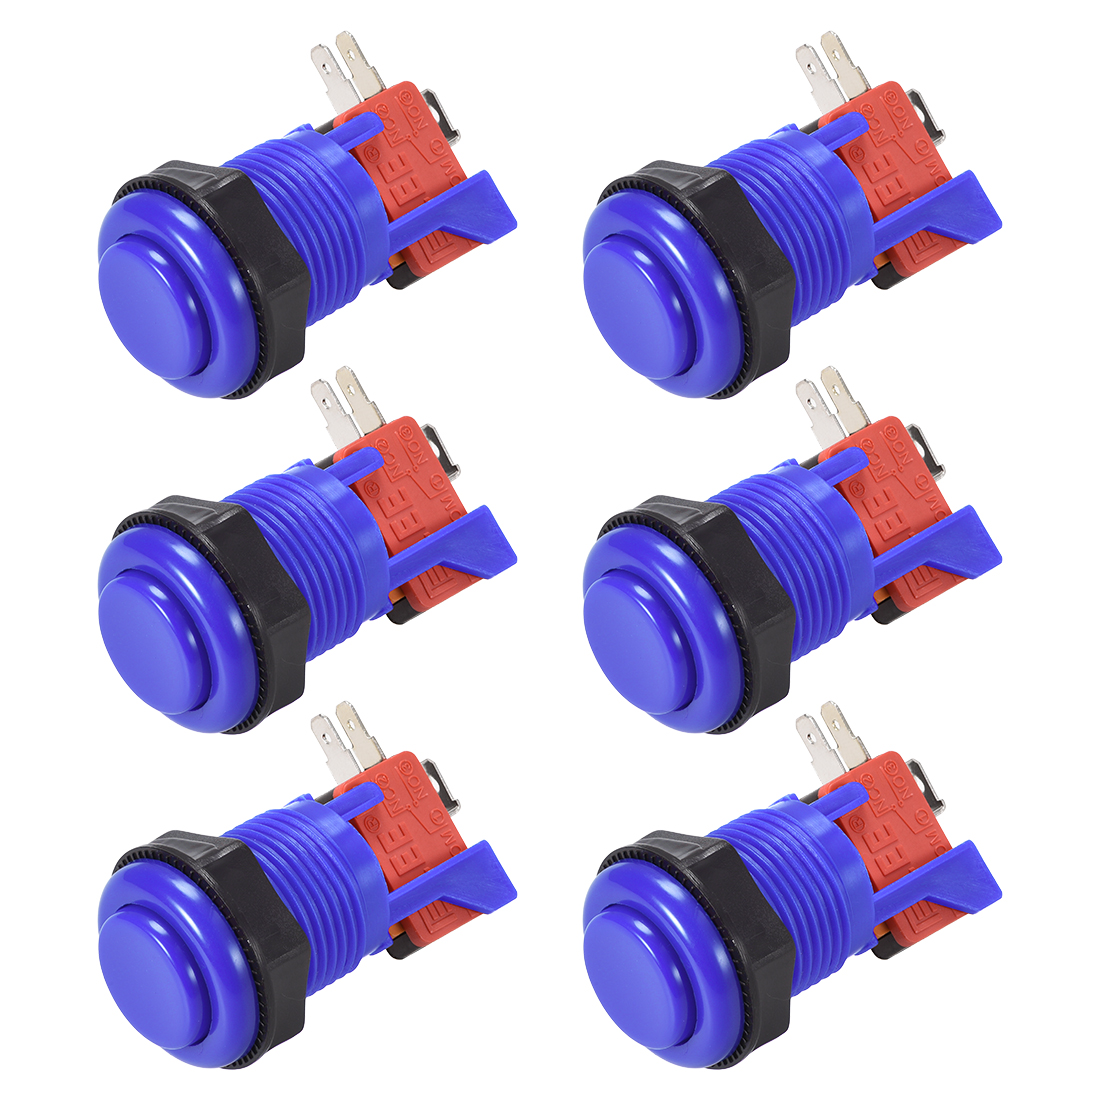 27mm Mounting Momentary Game Push Button Switch with Micro switch Blue 6pcs